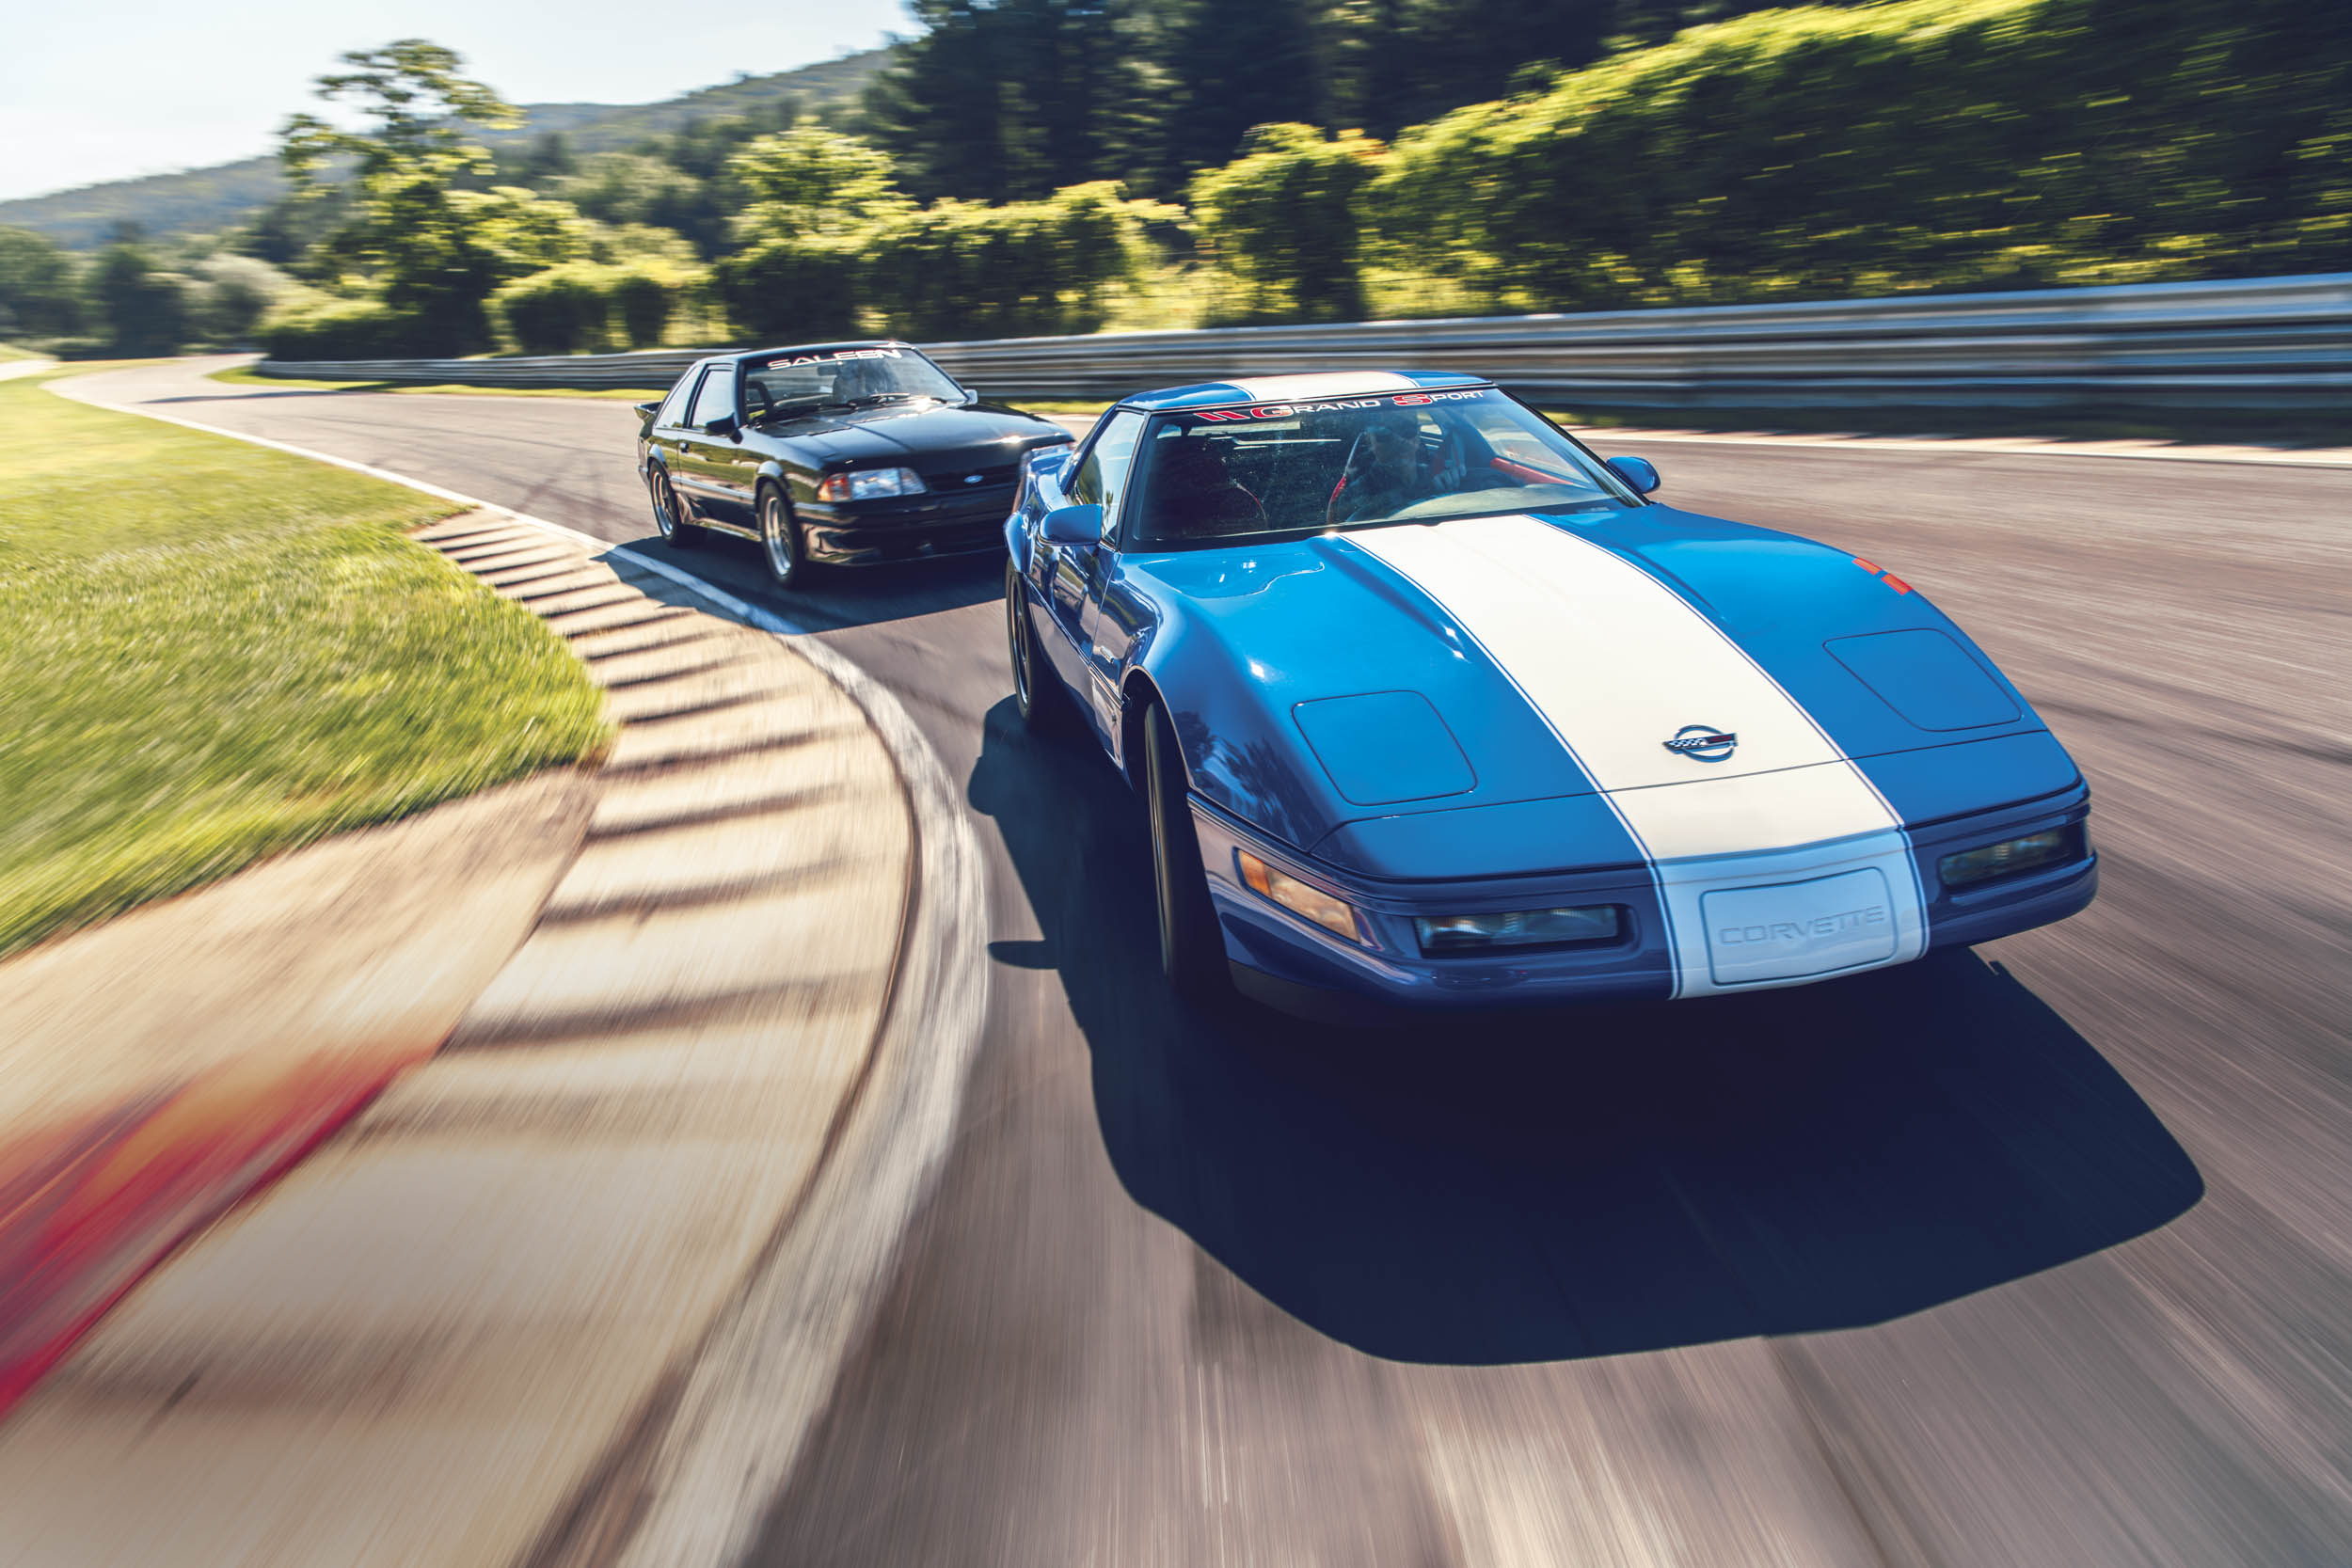 American V-8s will always be collectible, particularly special versions such as the Saleen Mustang and the rare Grand Sport Corvette.